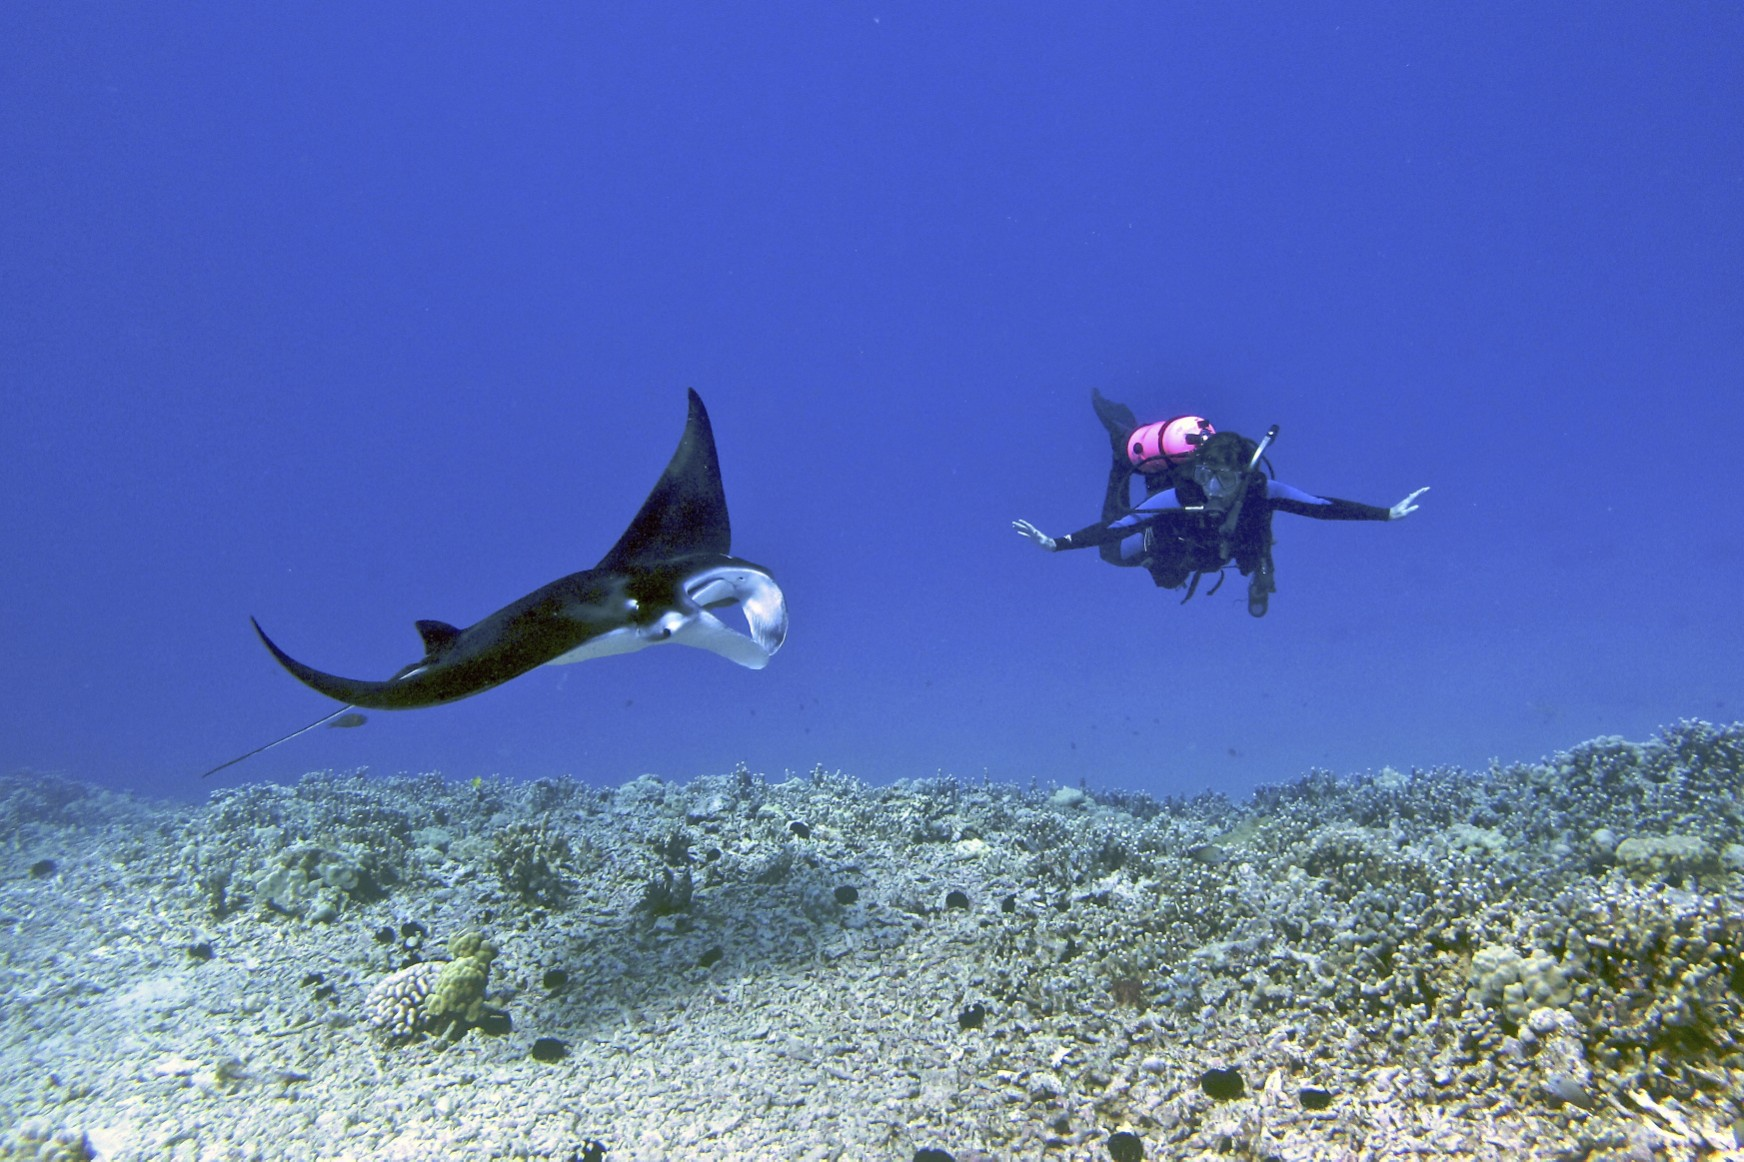 Scuba diver with a Manta Ray